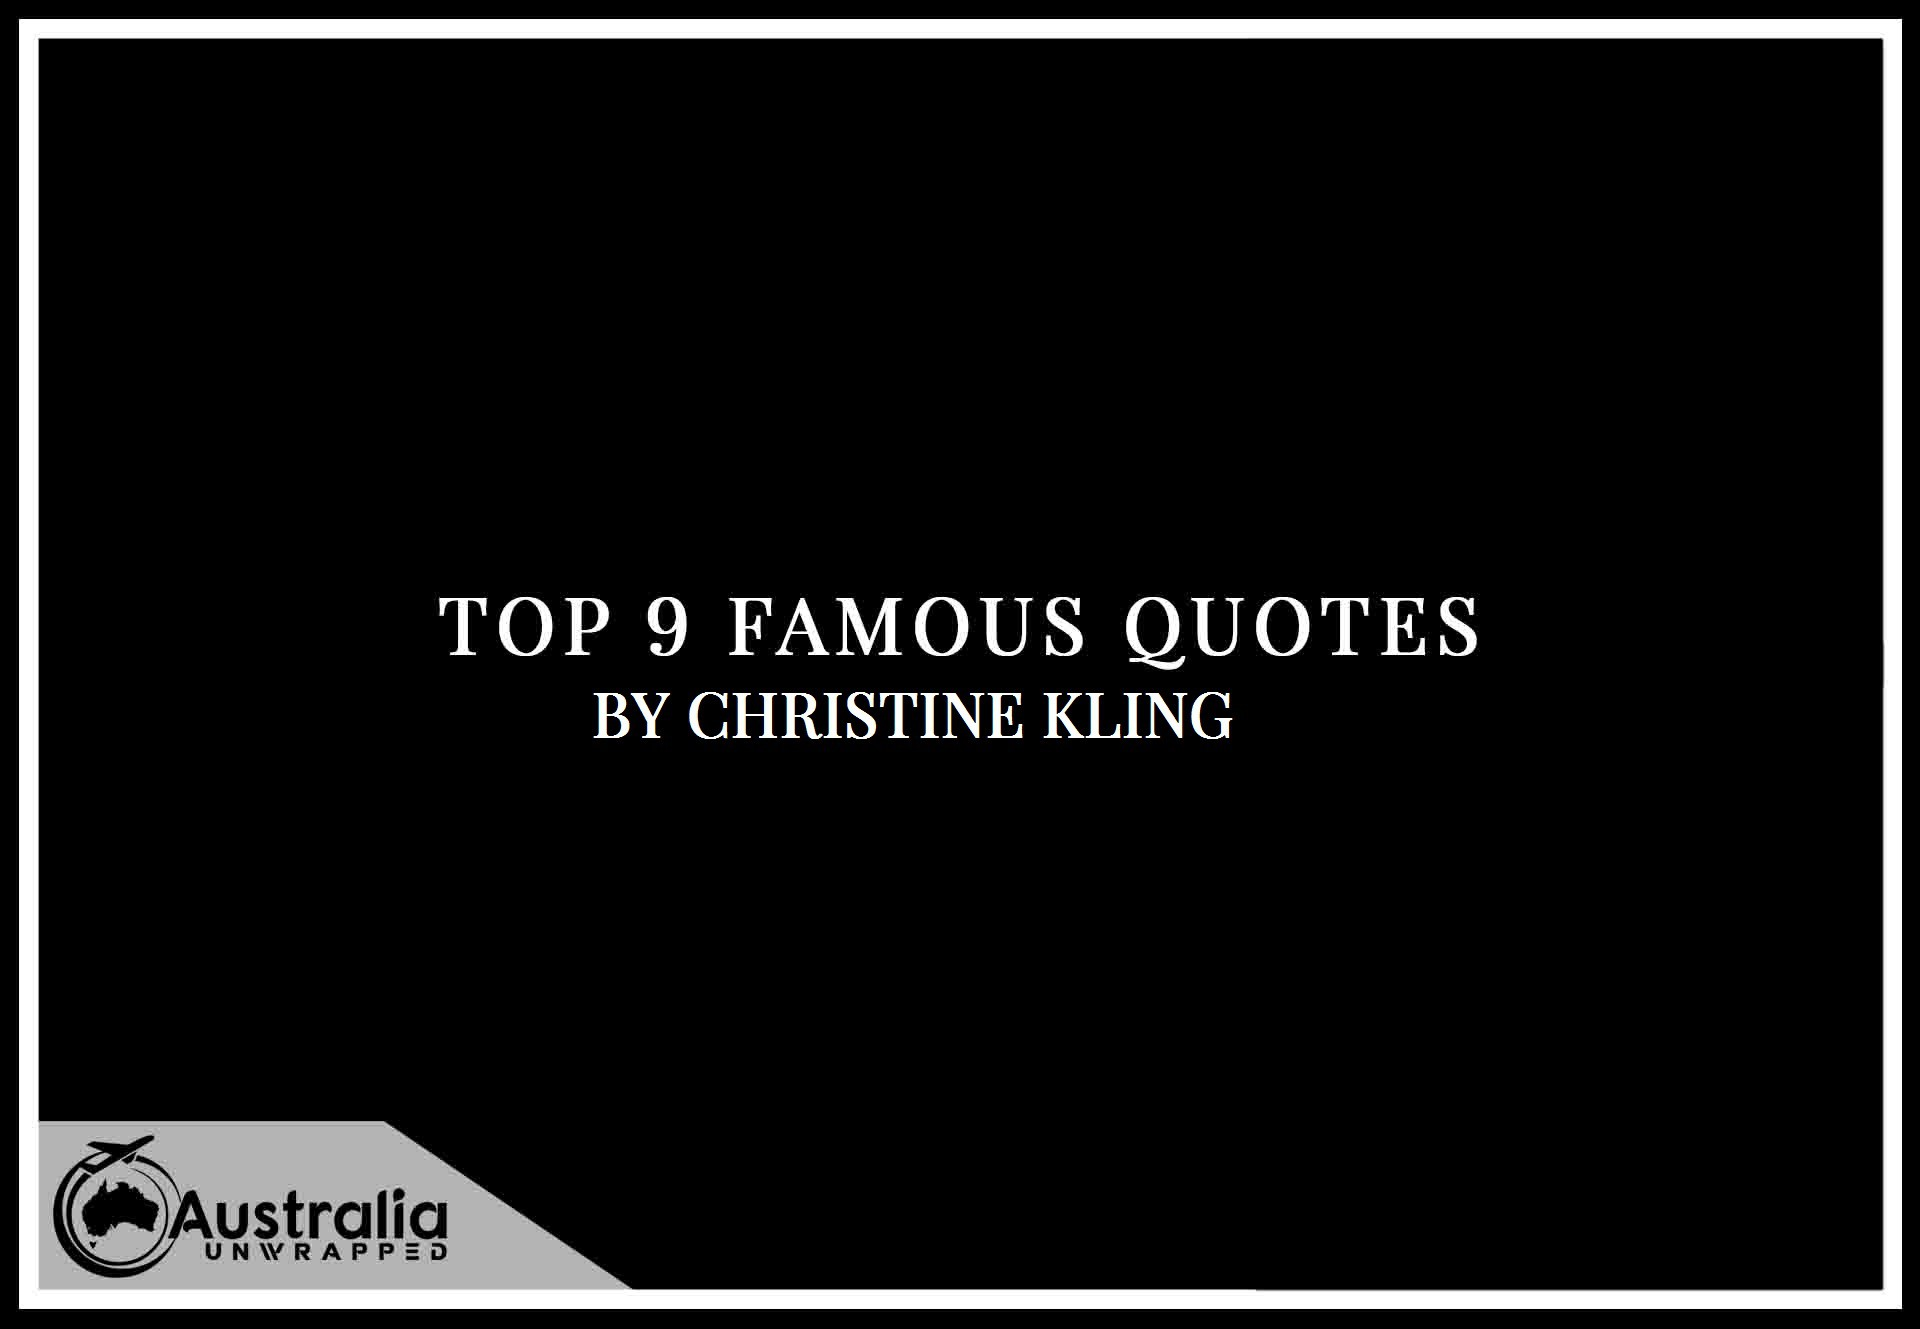 Christine Kling's Top 9 Popular and Famous Quotes